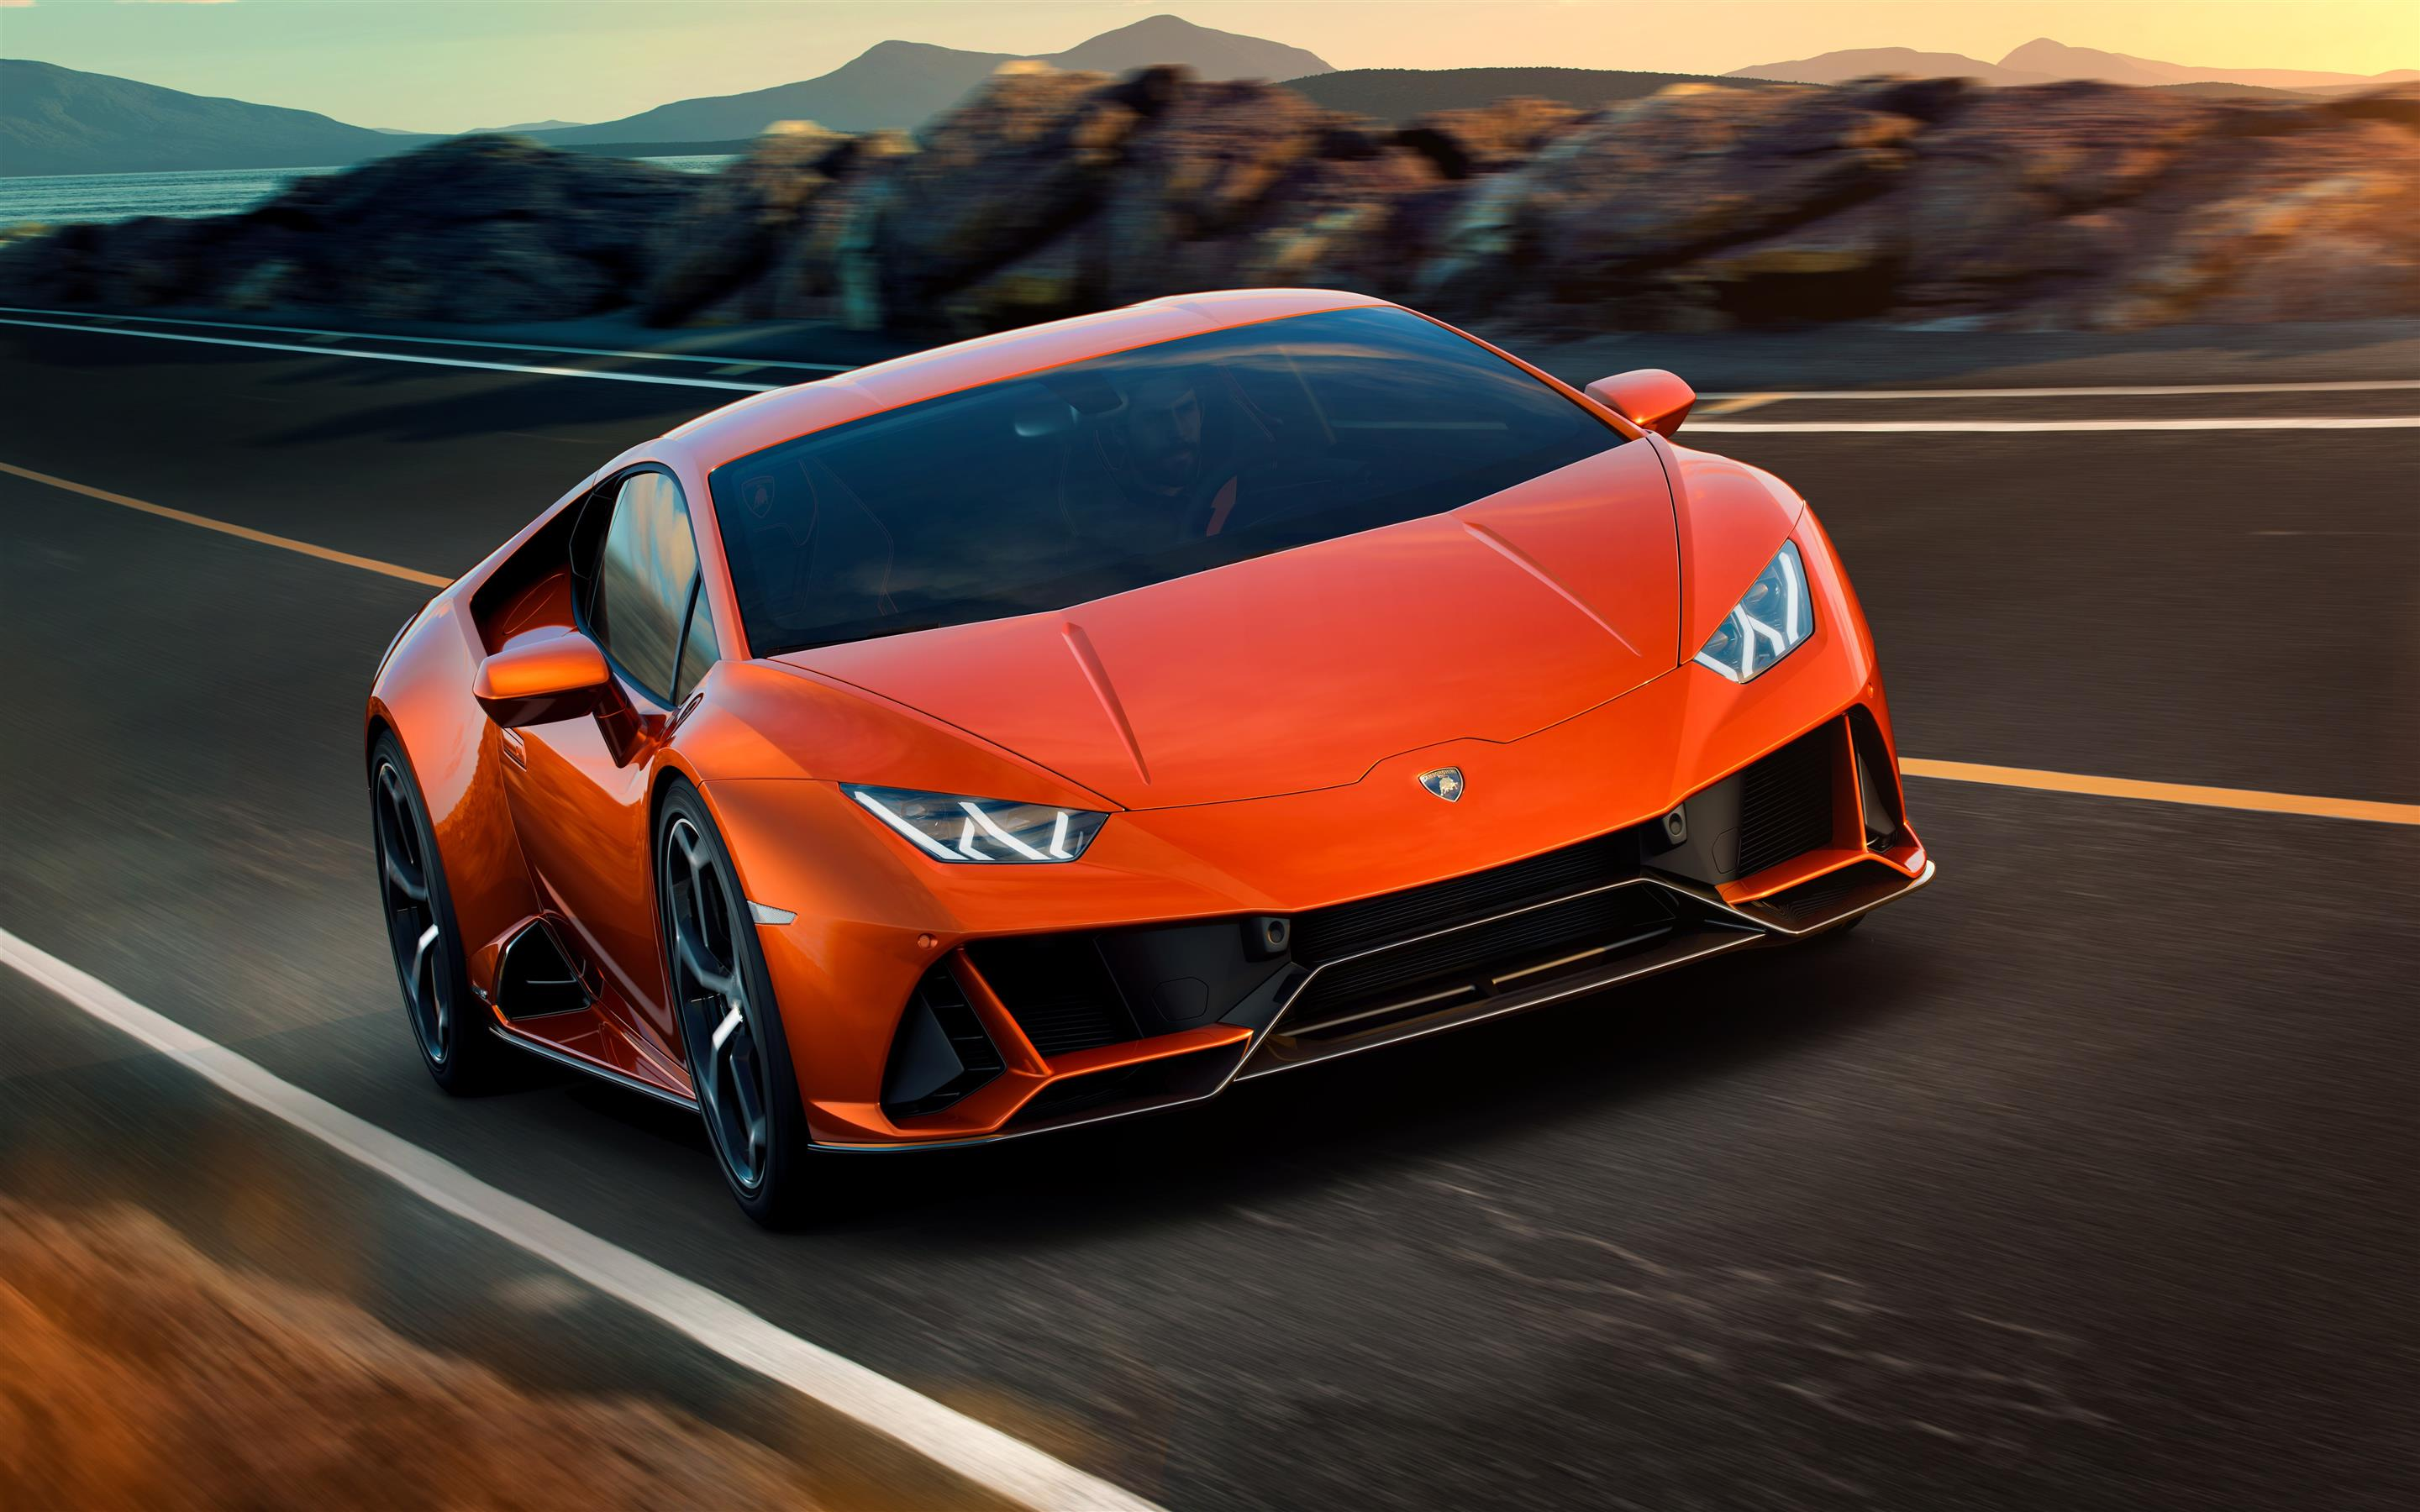 2880x1800 2019 Lamborghini Huracan EVO 8K Car Wallpaper